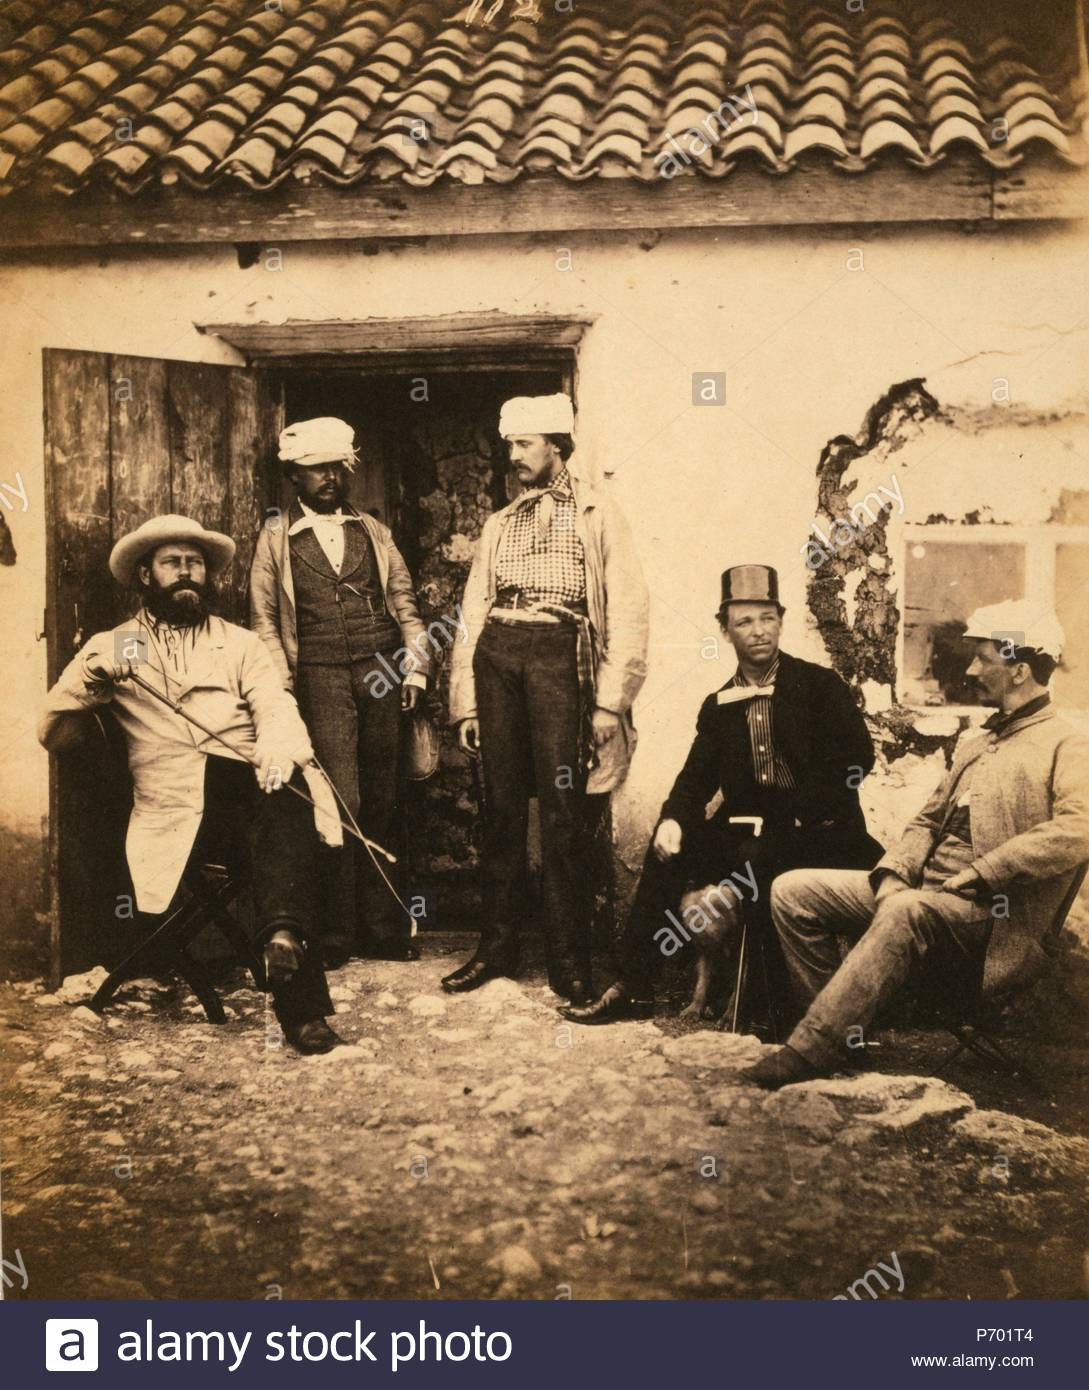 Railway officials, messrs. Swan, Cadell, Middleton, Howse, & Kellock, Crimean War, 1853-1856, Roger Fenton historic war campaign photo. - Stock Image